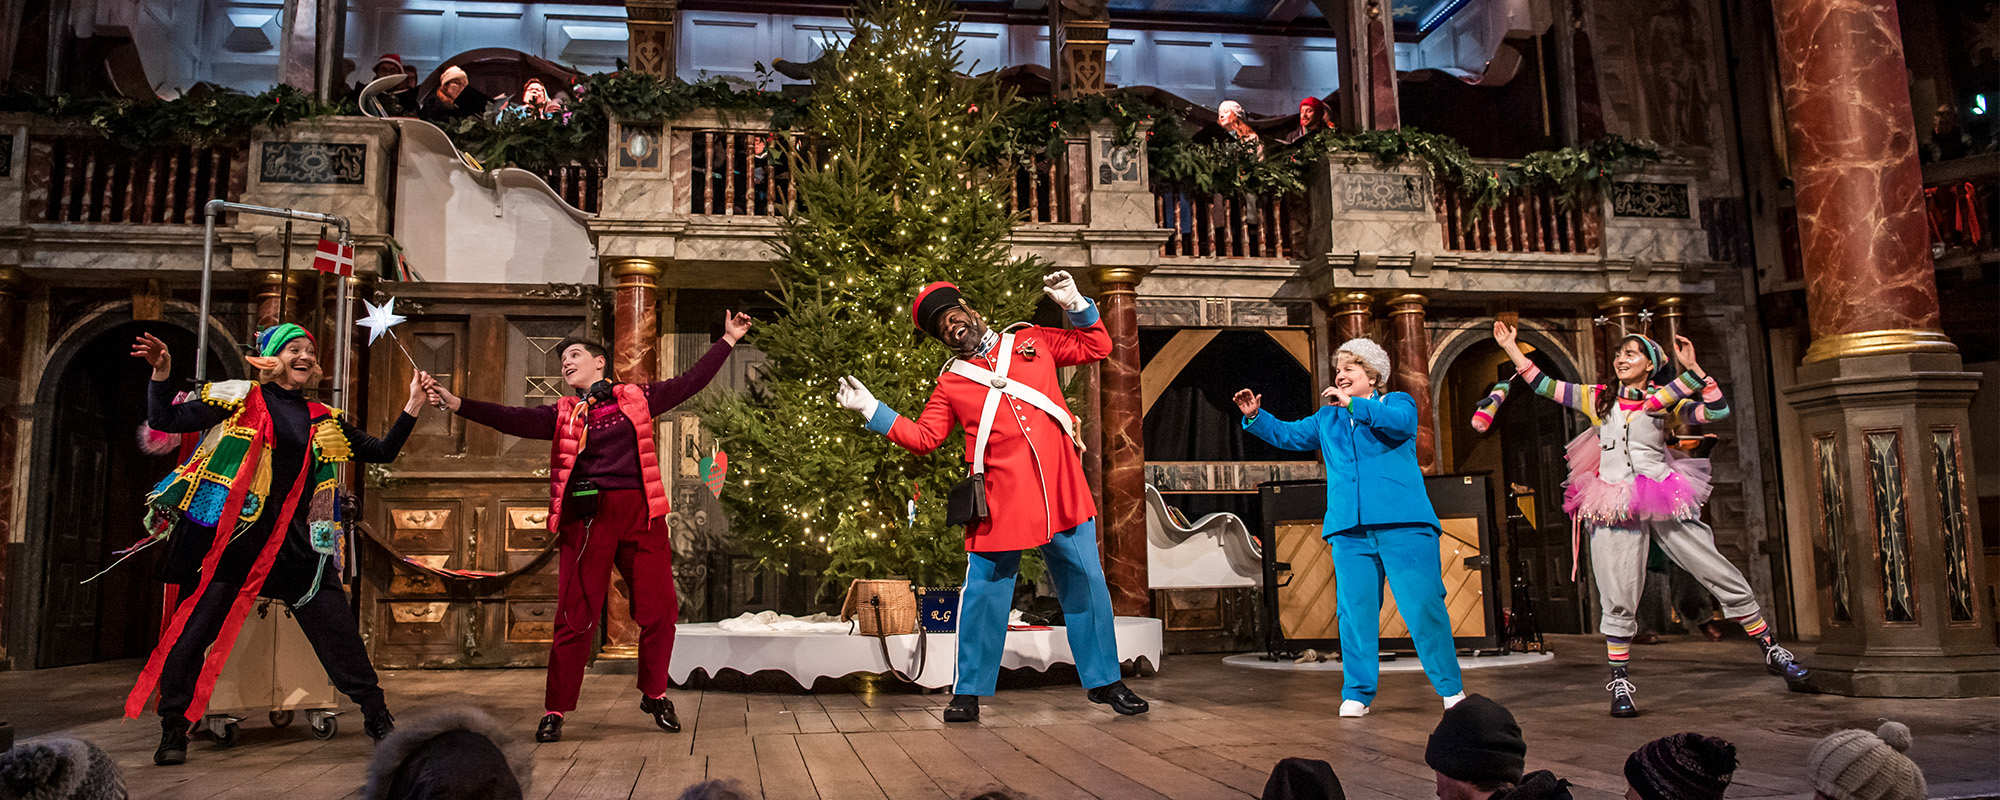 The cast of 'Christmas at the (Snow) Globe' dance in front of a Christmas tree